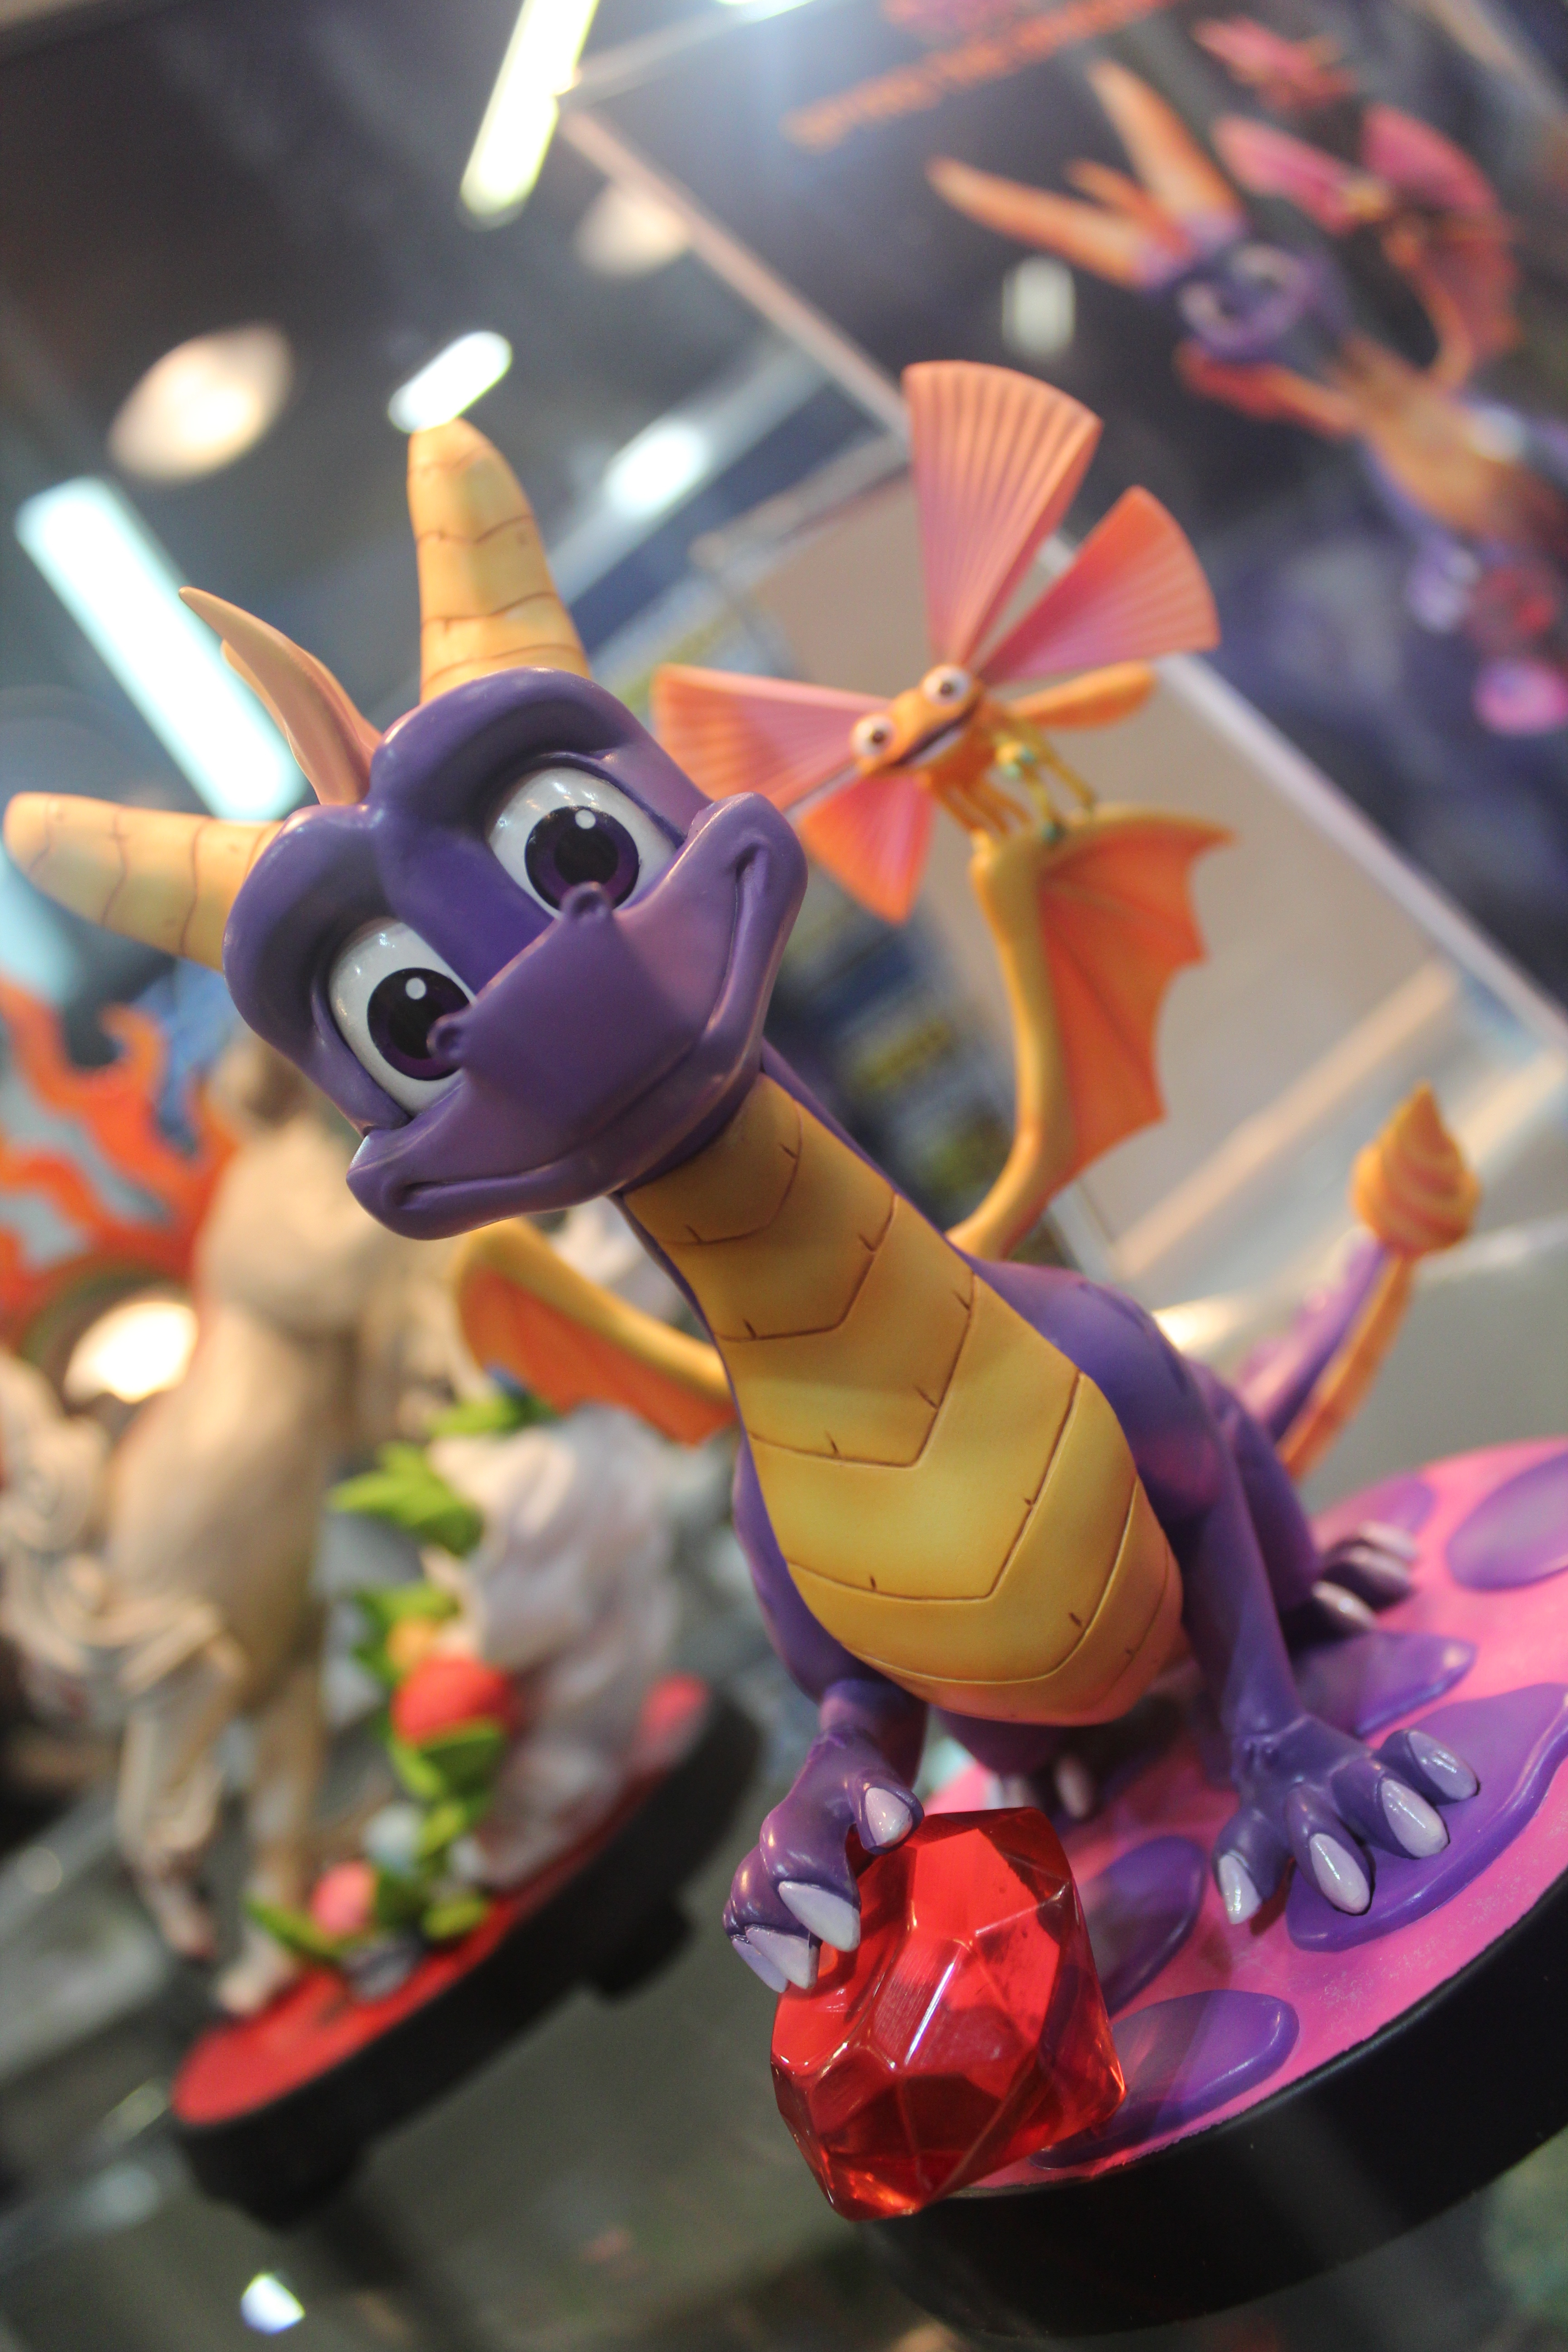 Spyro TF in Gamescom 2018